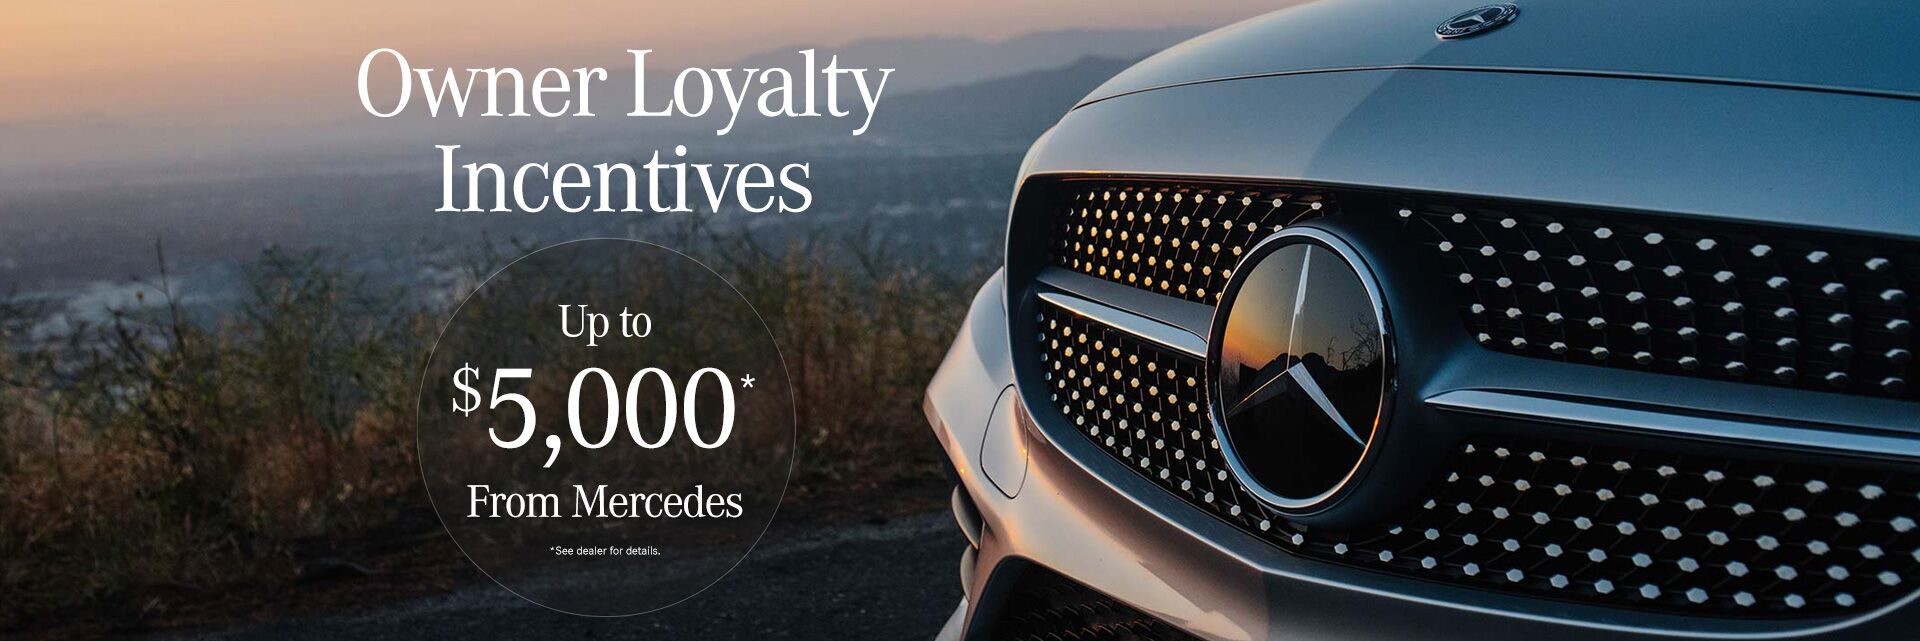 Owner Loyalty Incentives